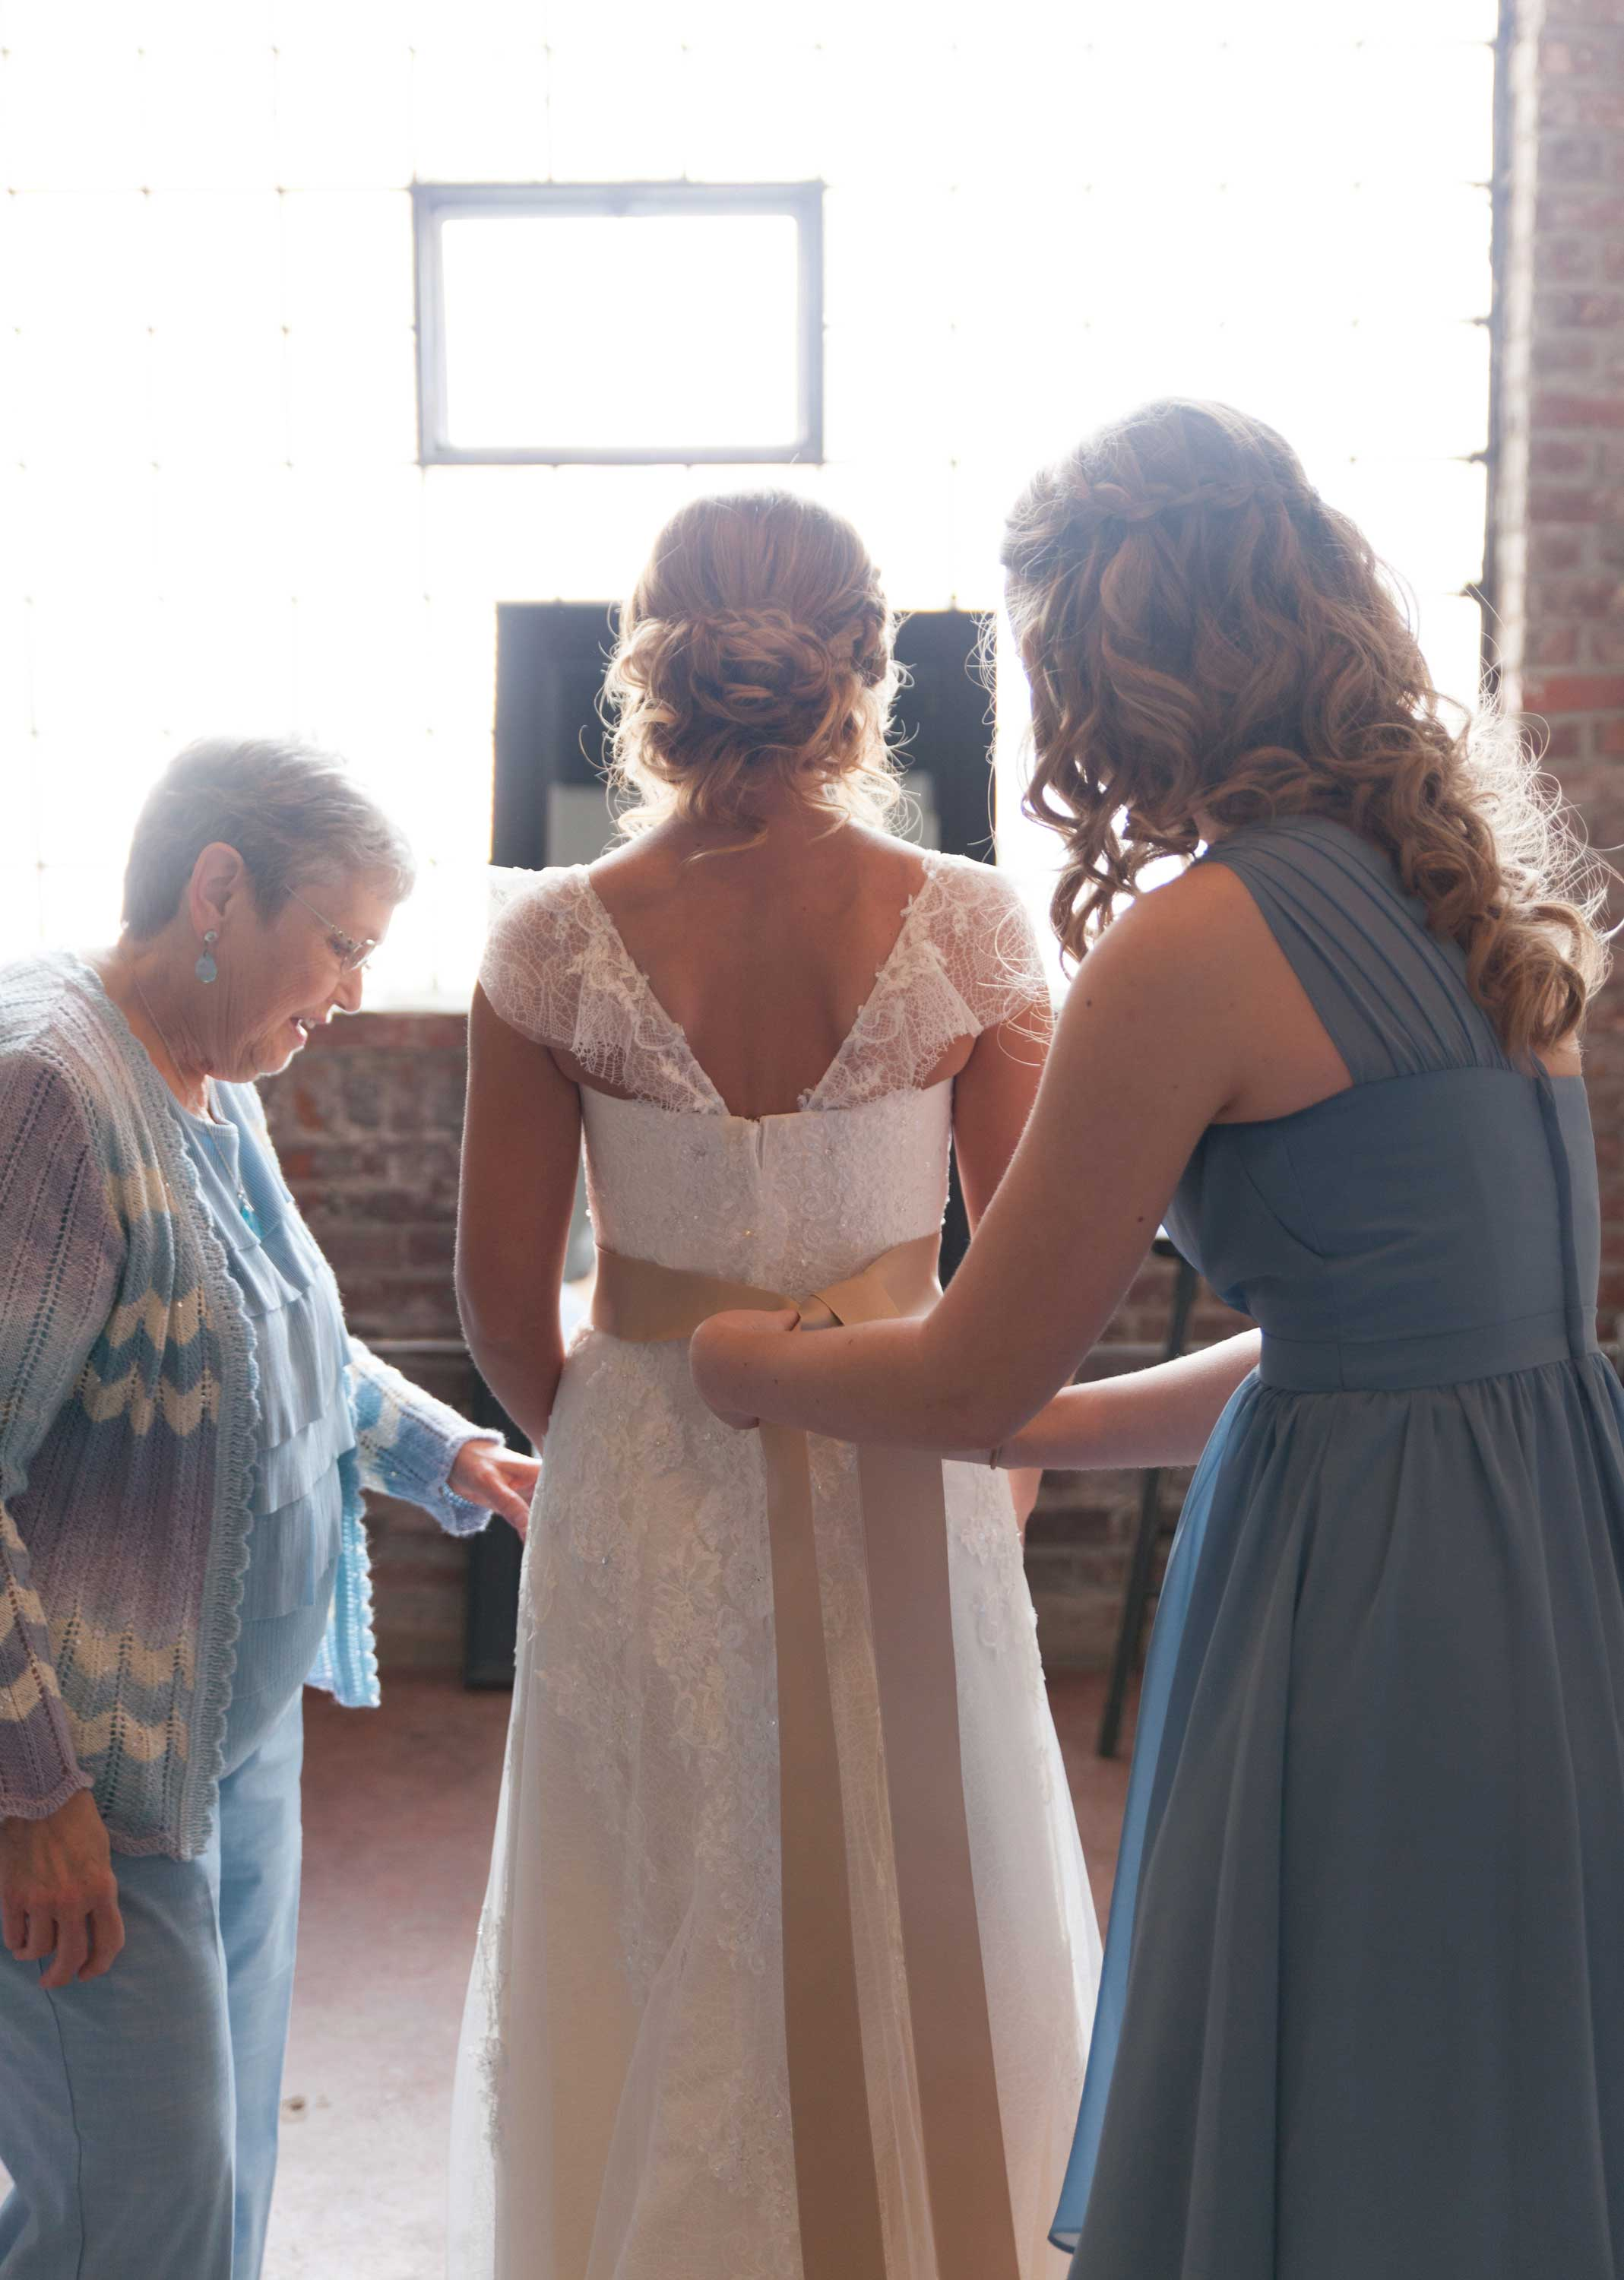 1. OUR BRIDE GETS HELP TYING HER SASH...